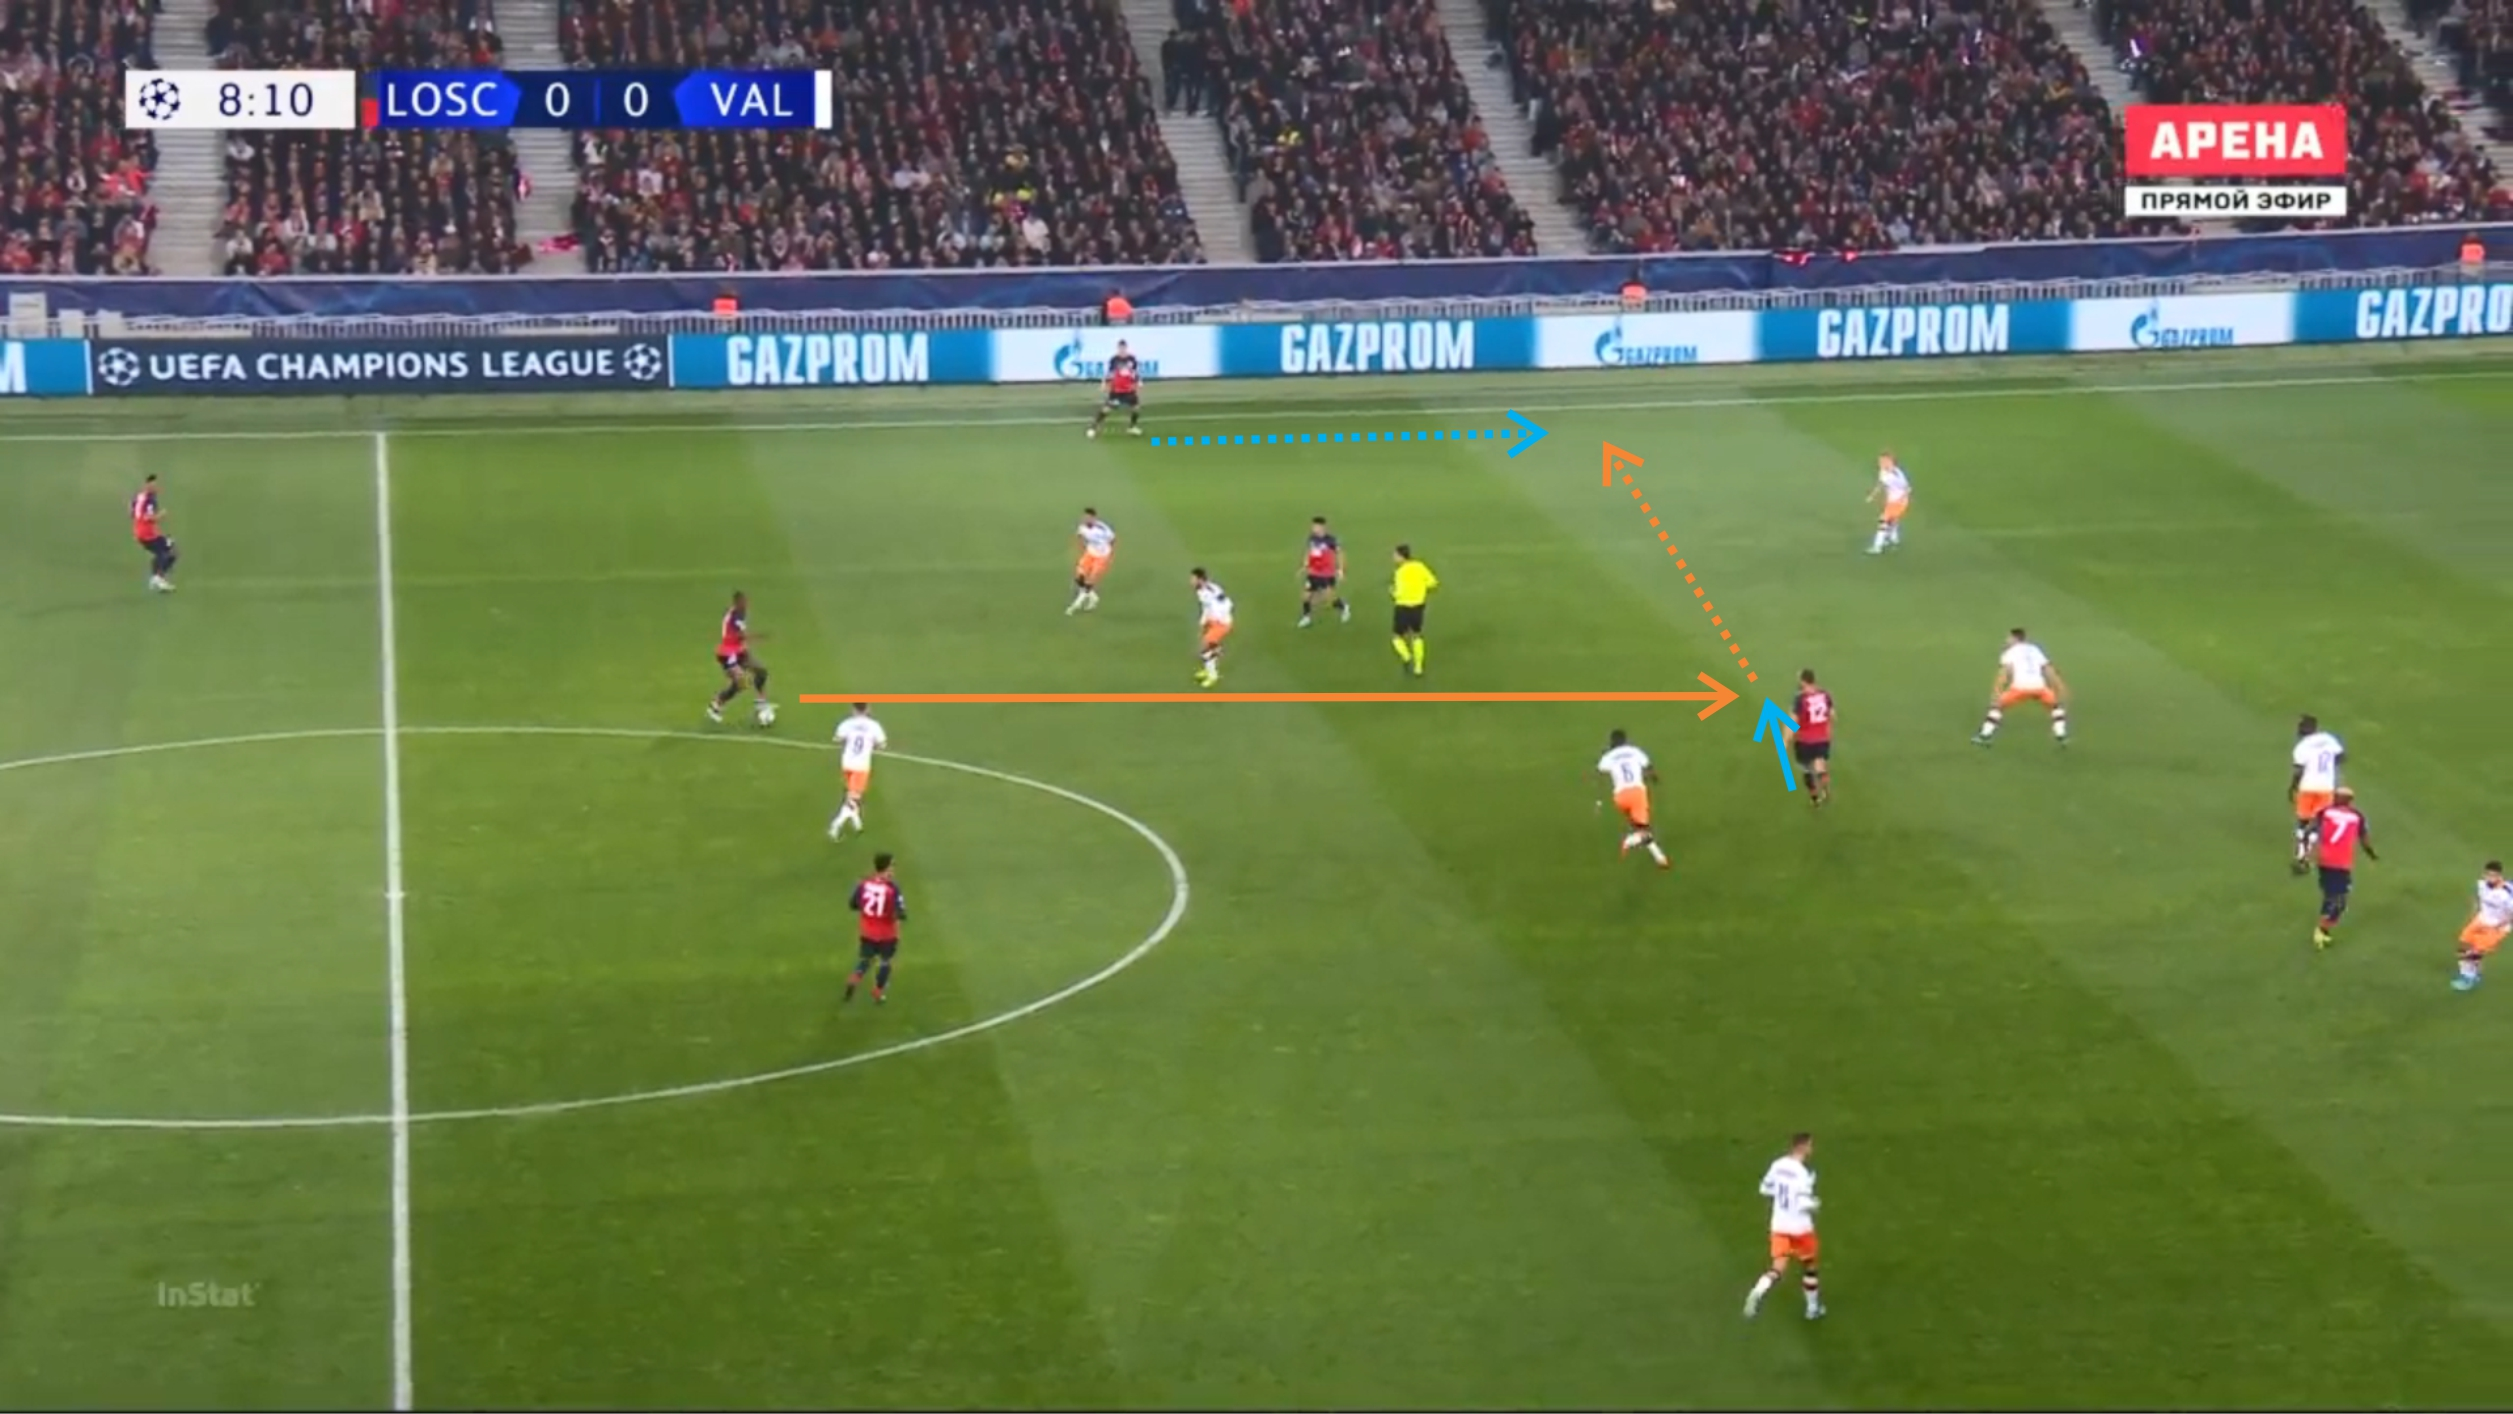 UEFA Champions League 2019/20: Lille vs Valencia - tactical analysis tactics